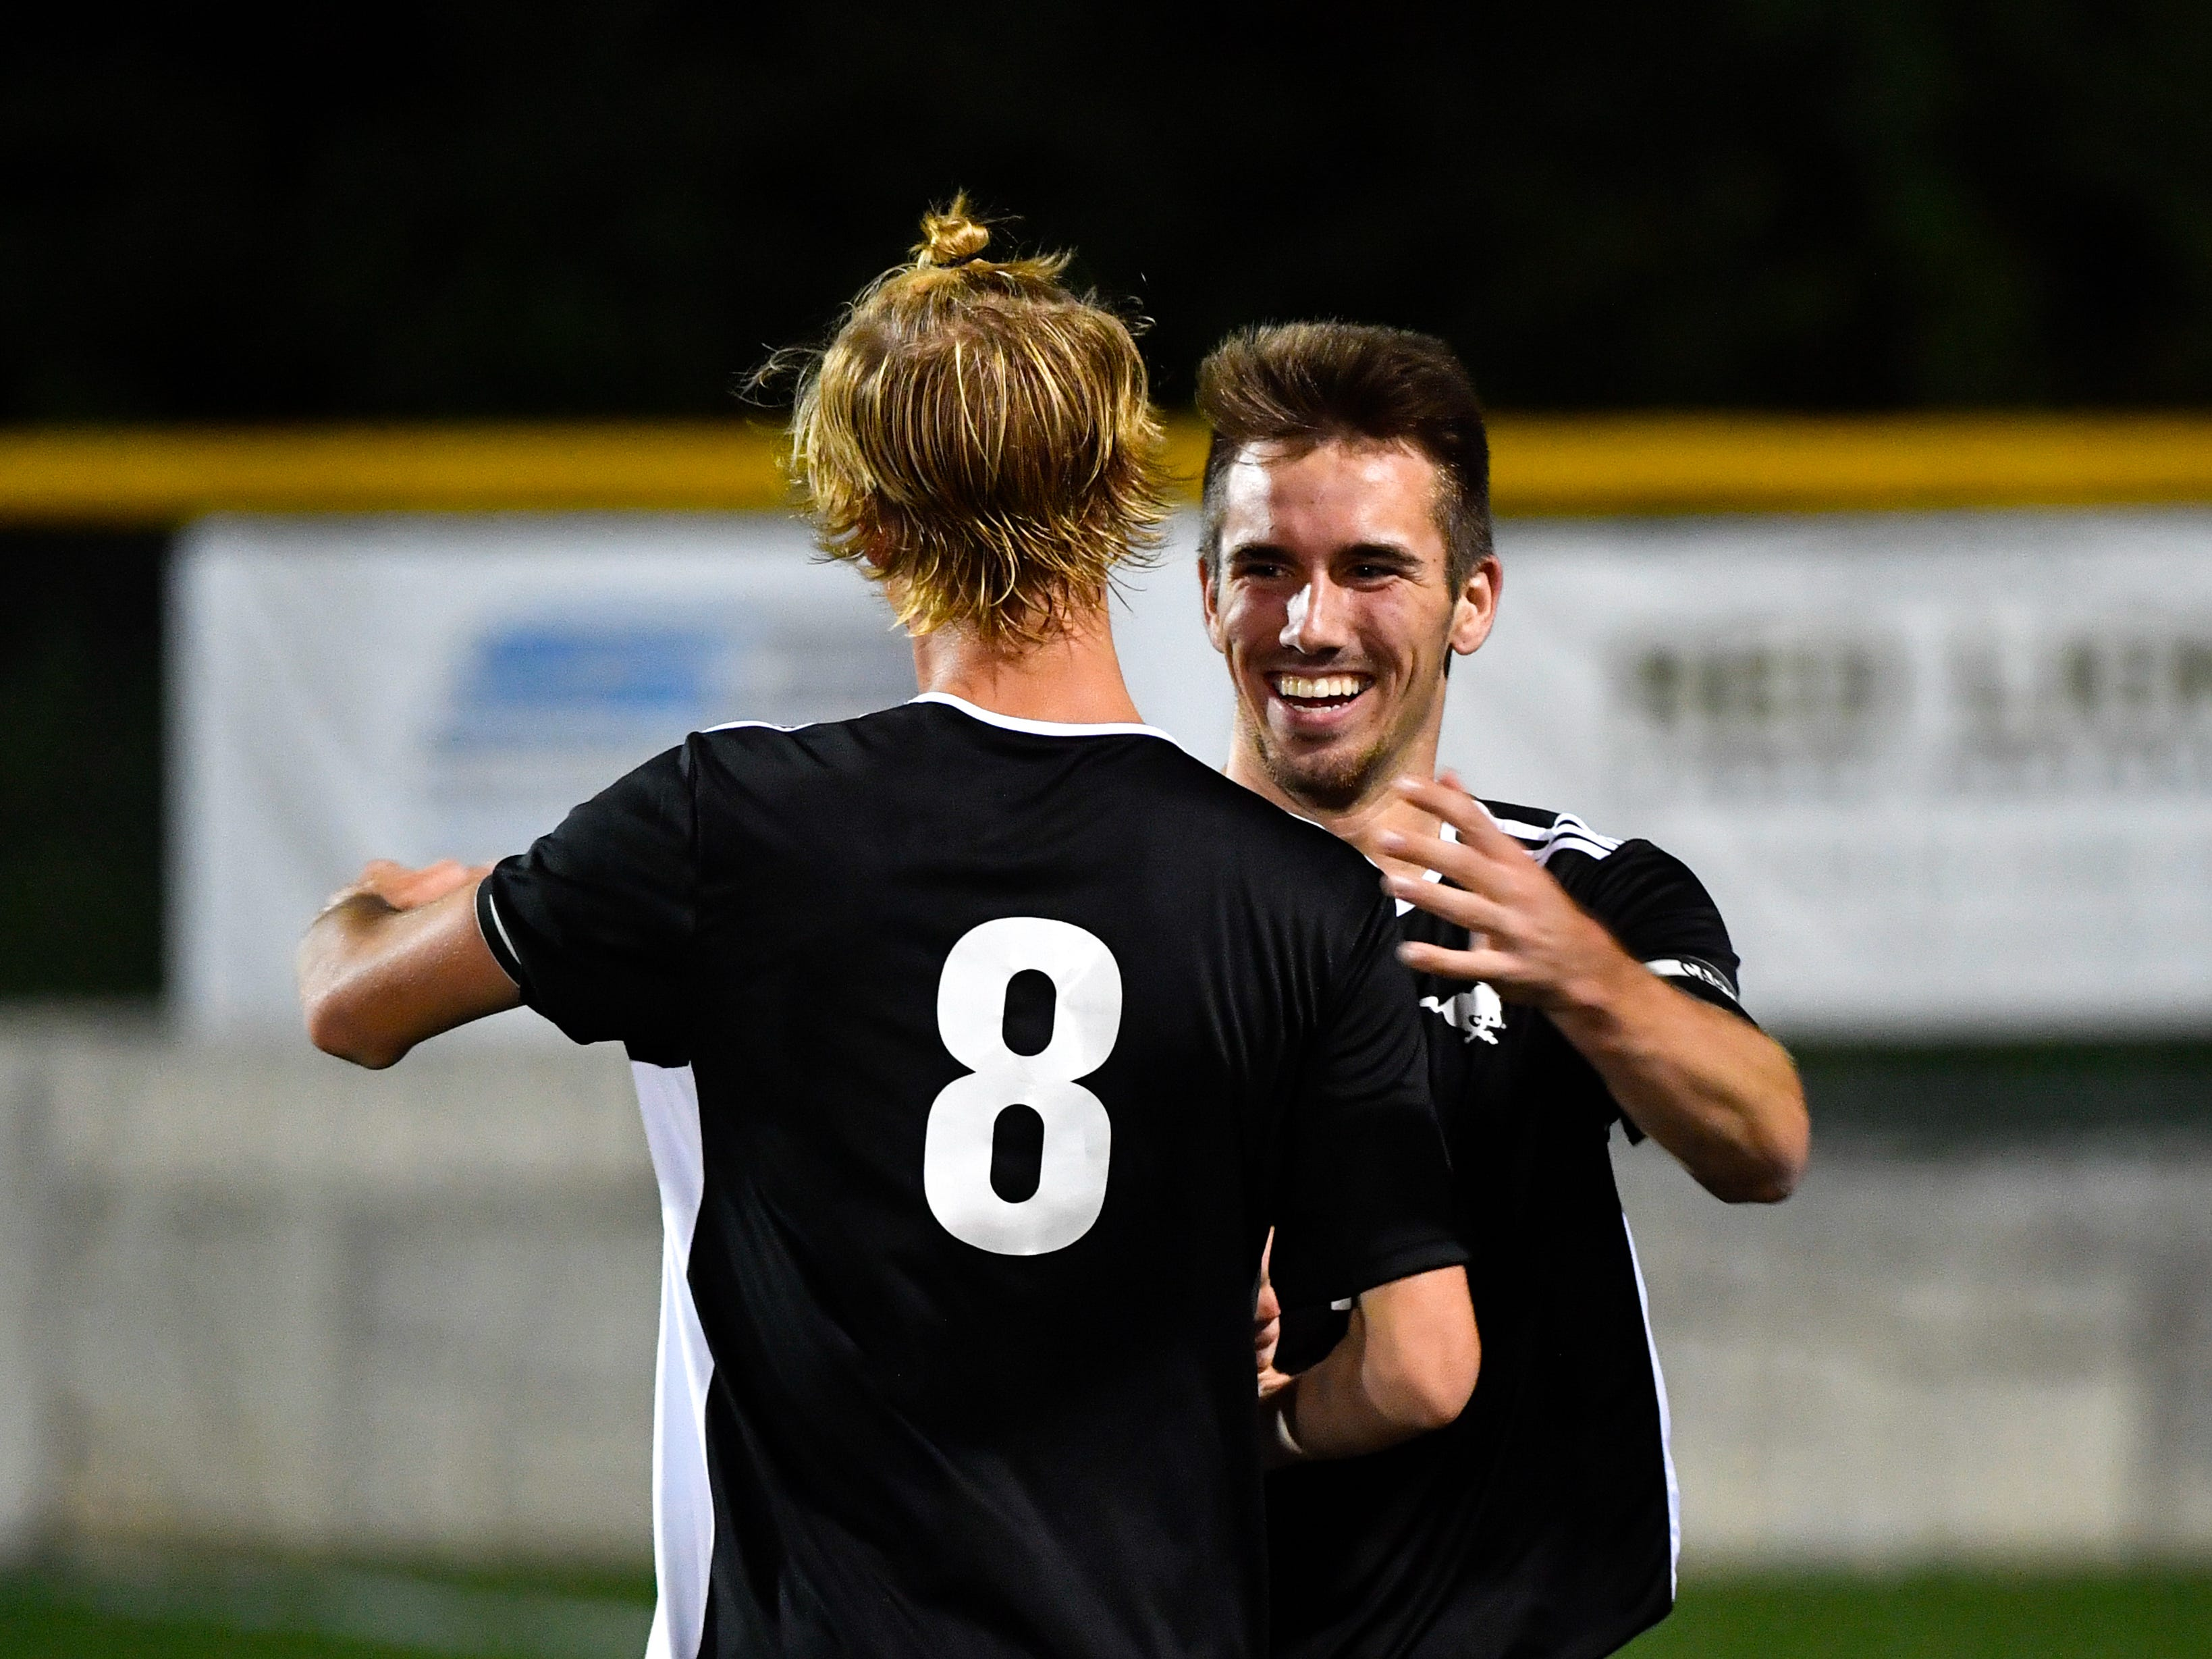 Sean Quinn (7) celebrates his goal with Casey Slater (8) during the boys soccer game between South Western and York Catholic, October 16, 2018. The Mustangs beat the Irish 2-1.